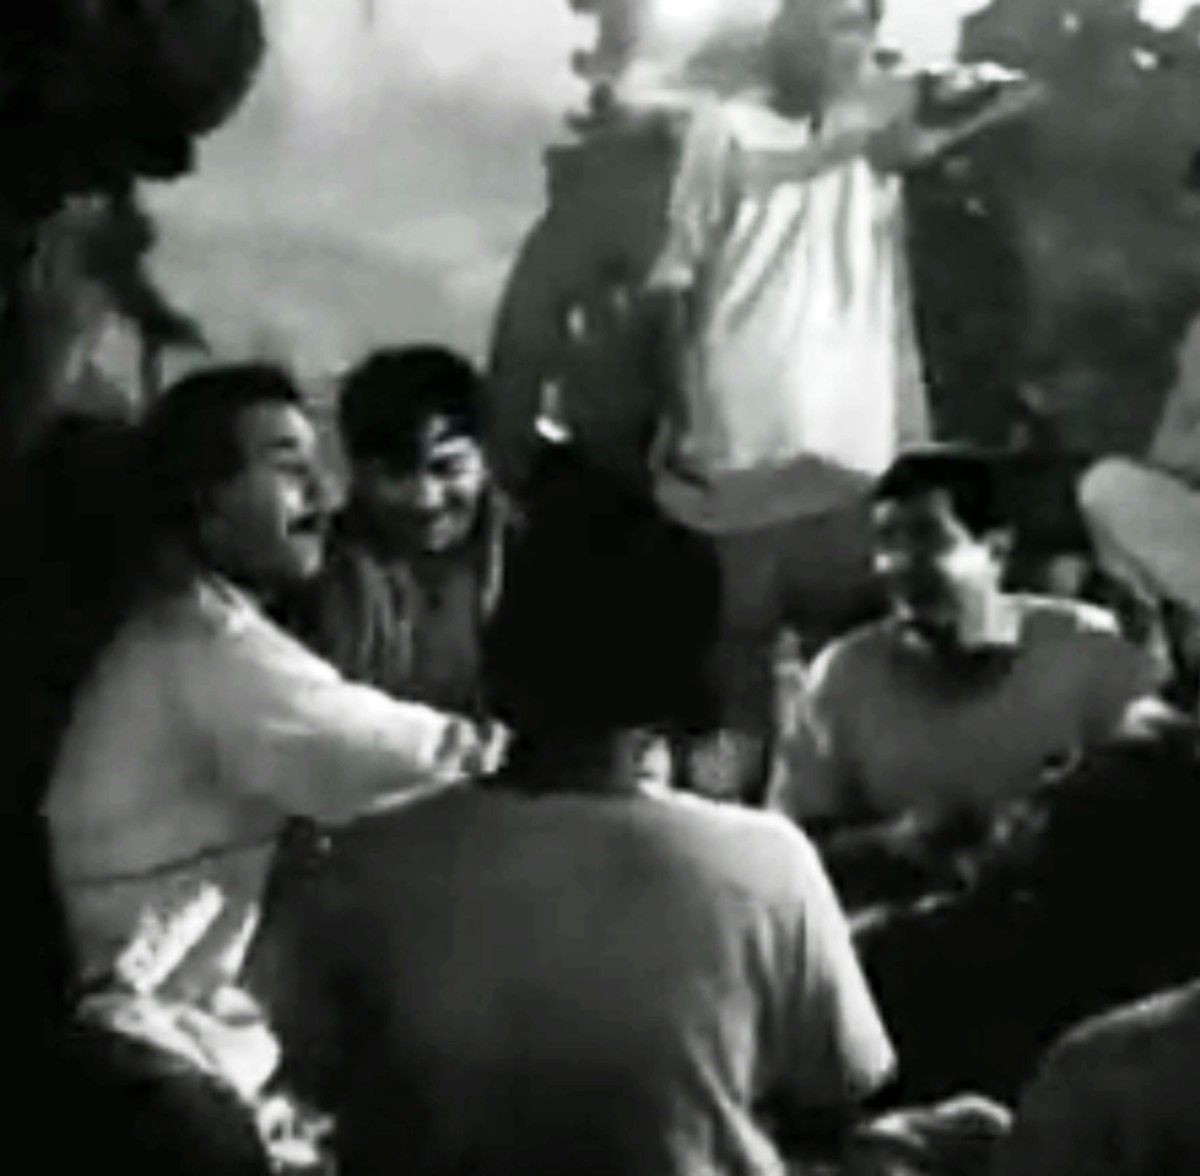 Raj Kapoor in Teesri Kasam.  A very authentic folk song about love at first sight.